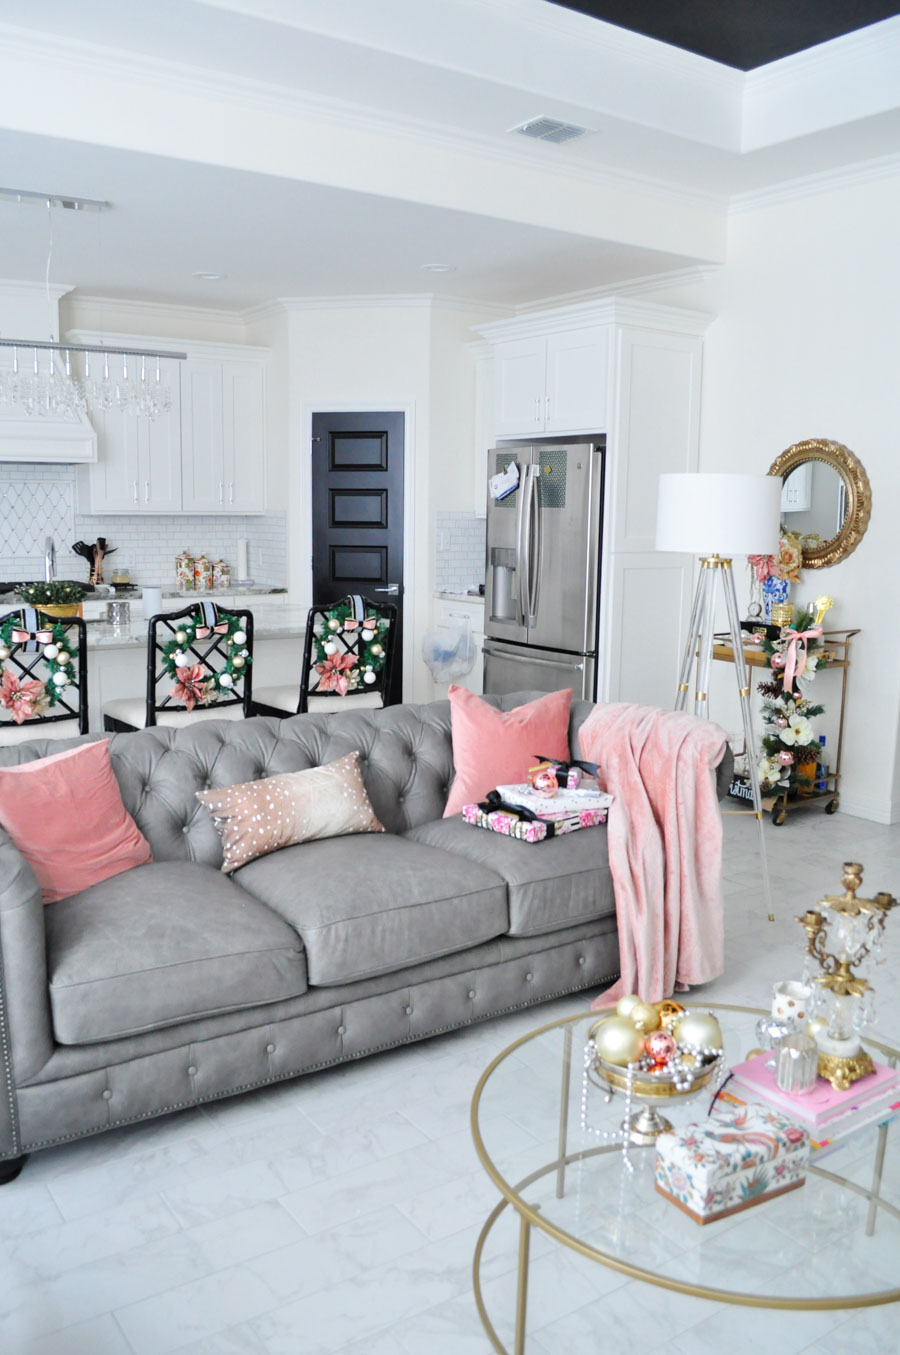 Open concept living, kitchen and dining space decorated for the holidays in blush, silver, white and gold. Love the gray chesterfield and crystal chandeliers!